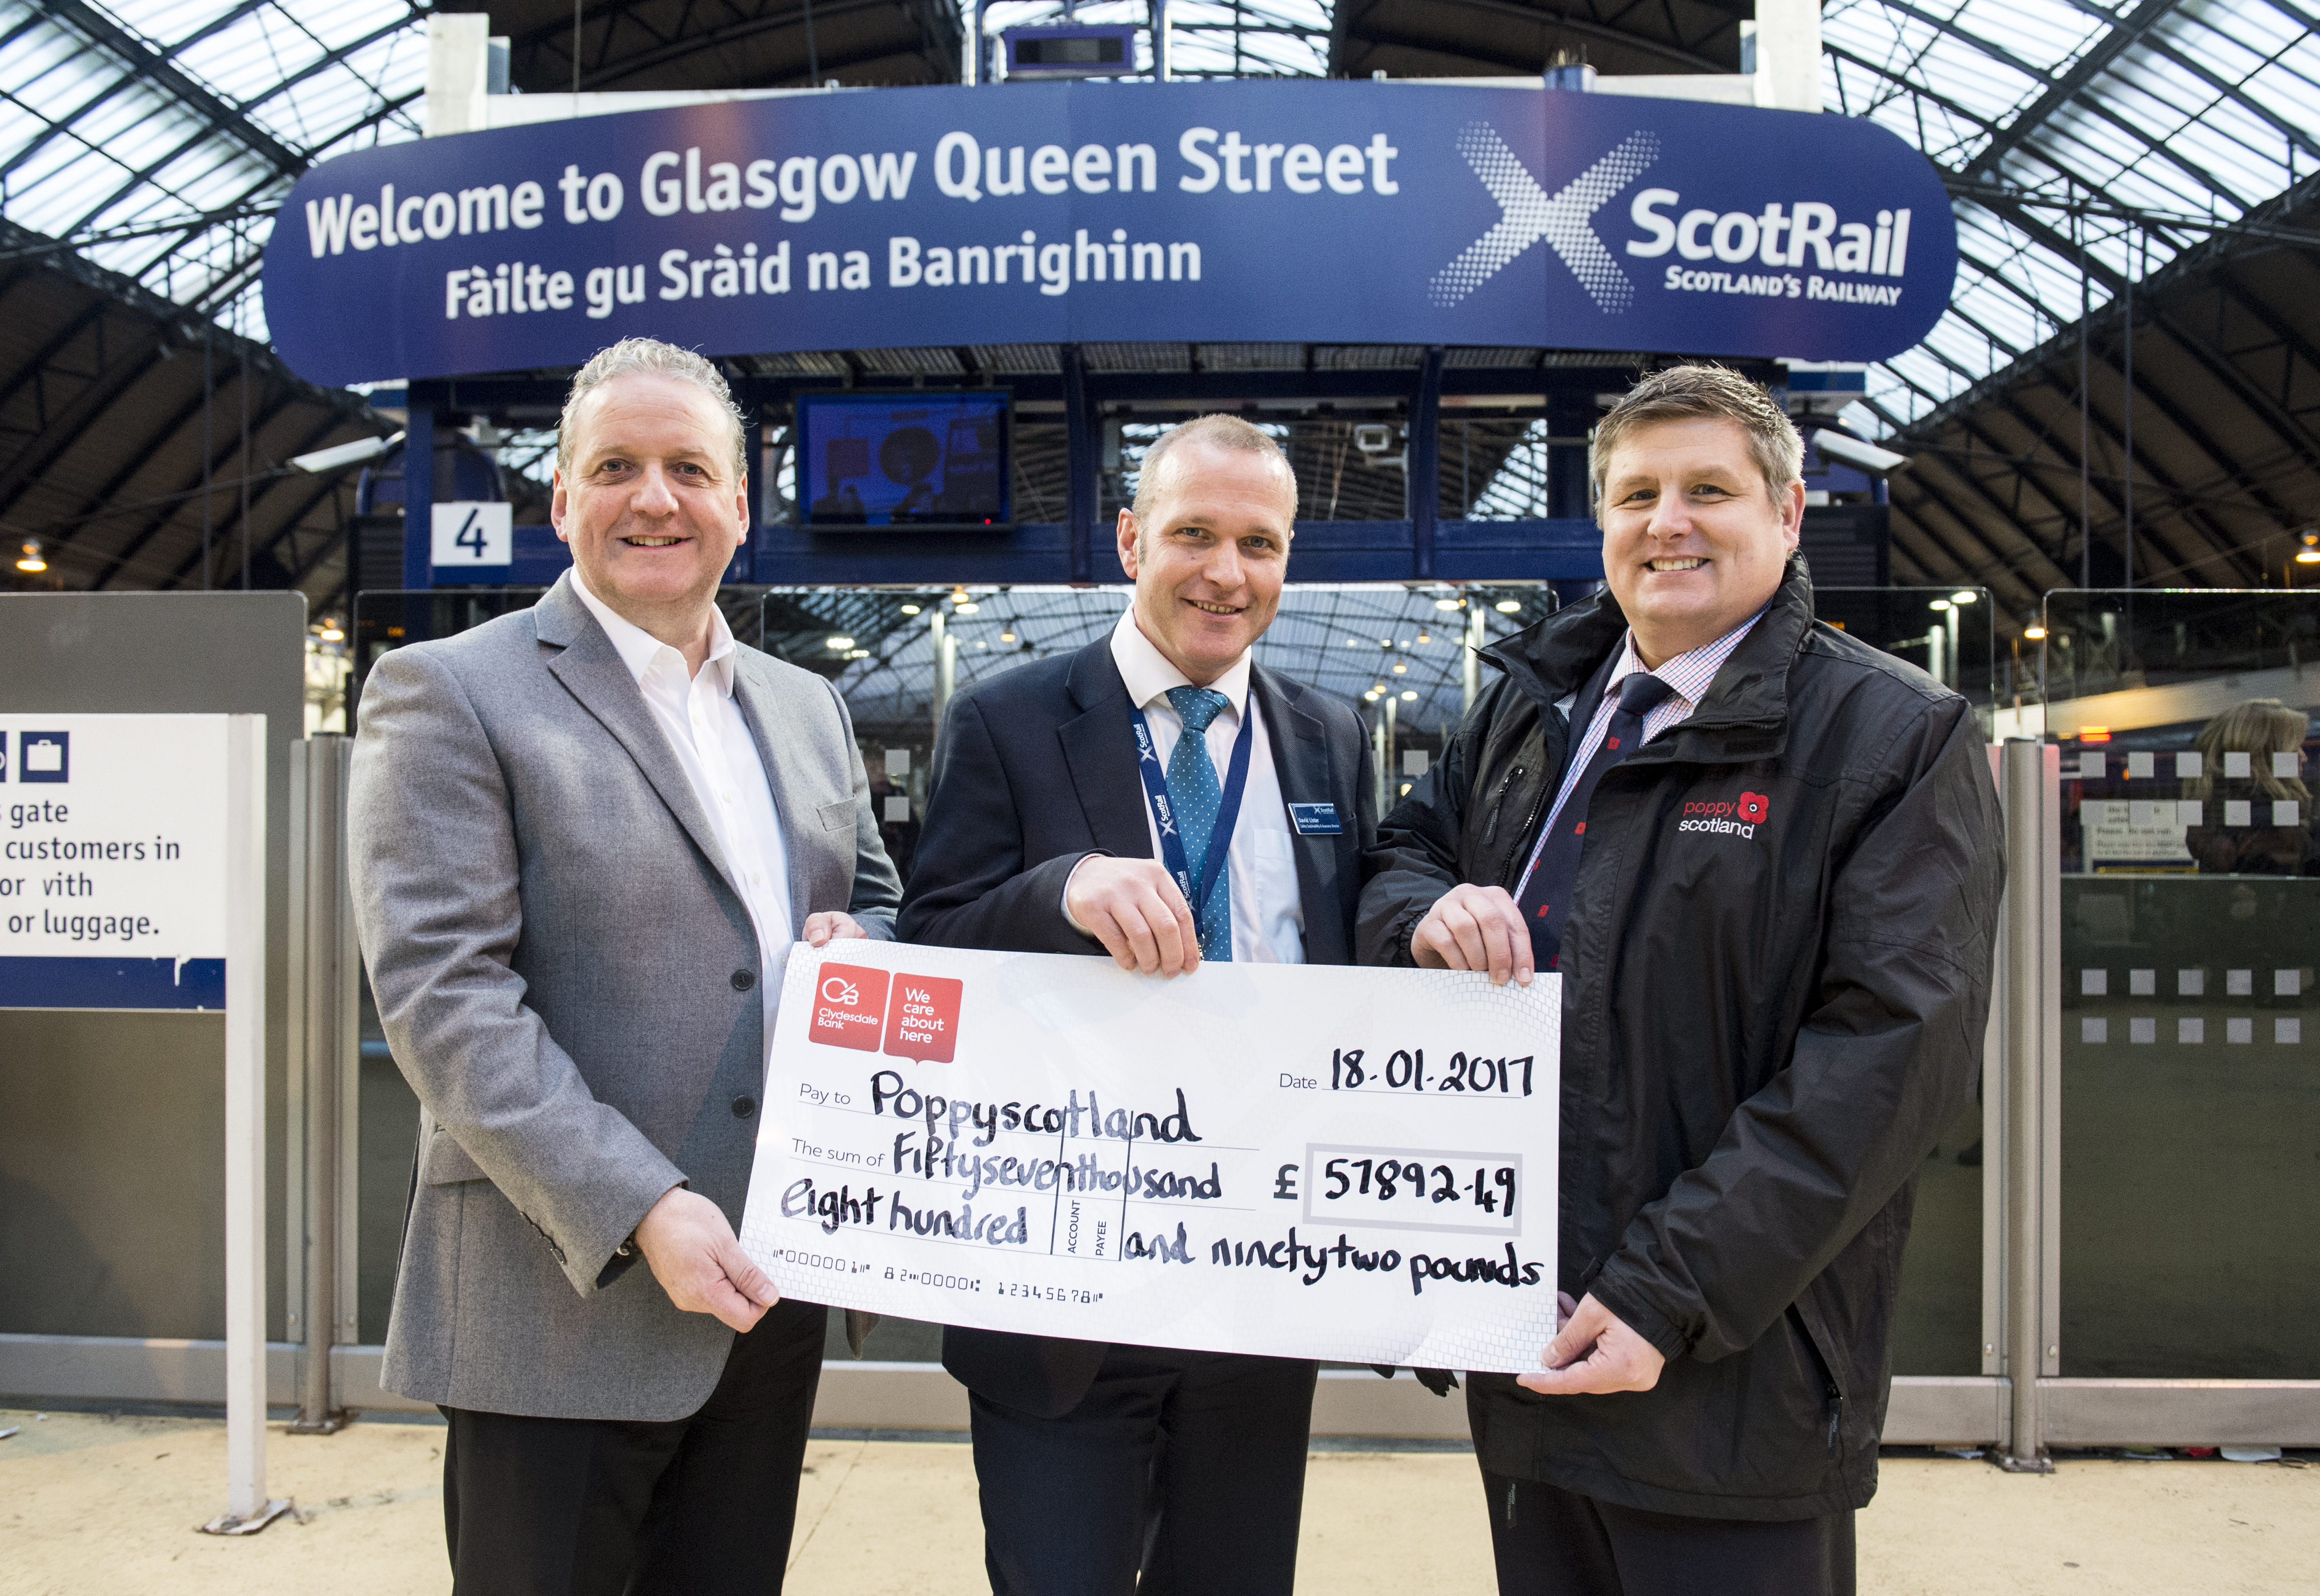 18/01/17 - FIRST SCOTRAIL - 17011805    QUEEN STREET STATION - GLASGOW     ScotRail Alliance sustainability & safety assurance director David Lister, along with station staff, will present a cheque to Poppyscotland for the total raised across the ScotRail Alliance network during last year's appeal.